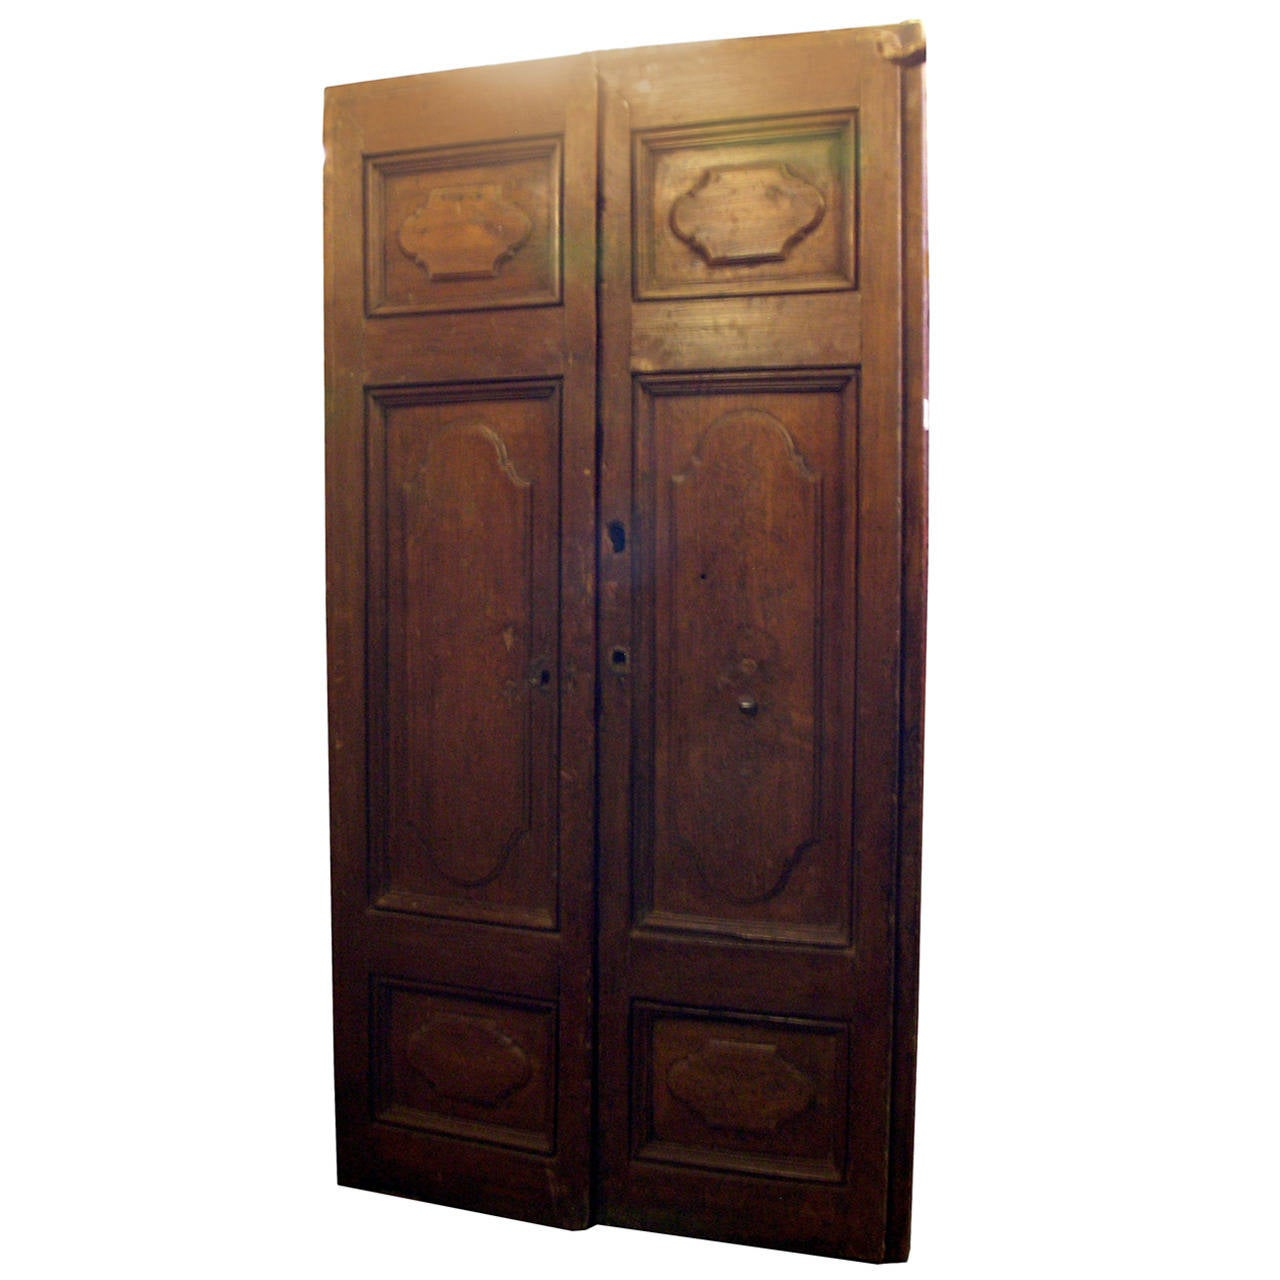 Antique chestnut double door for sale at 1stdibs for Double doors for sale